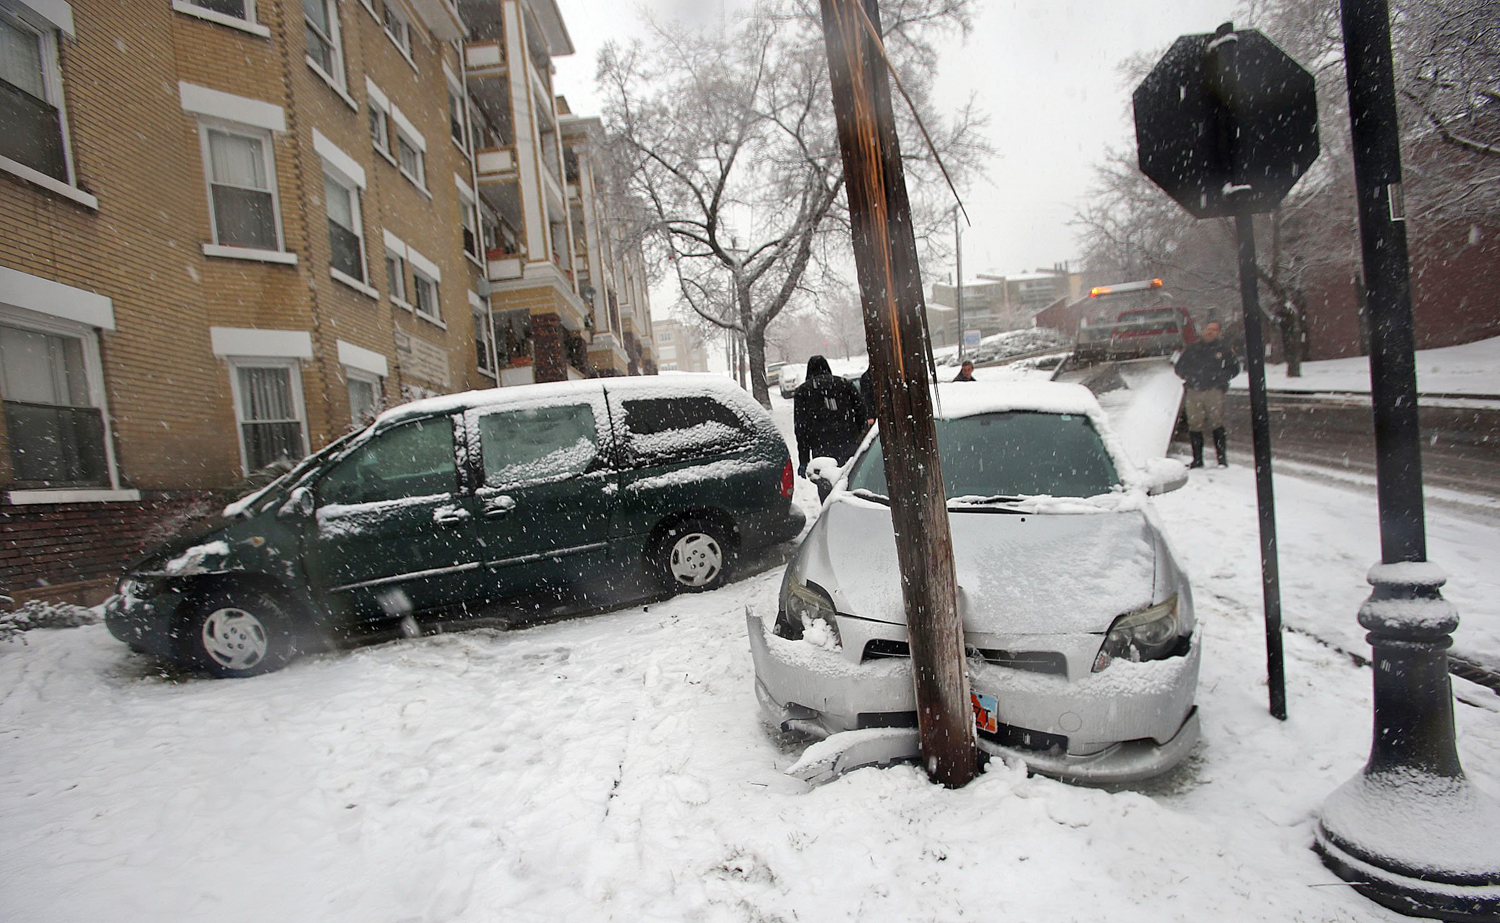 news other holiday travel nigare winter storm tornadoes could spell christmas misery